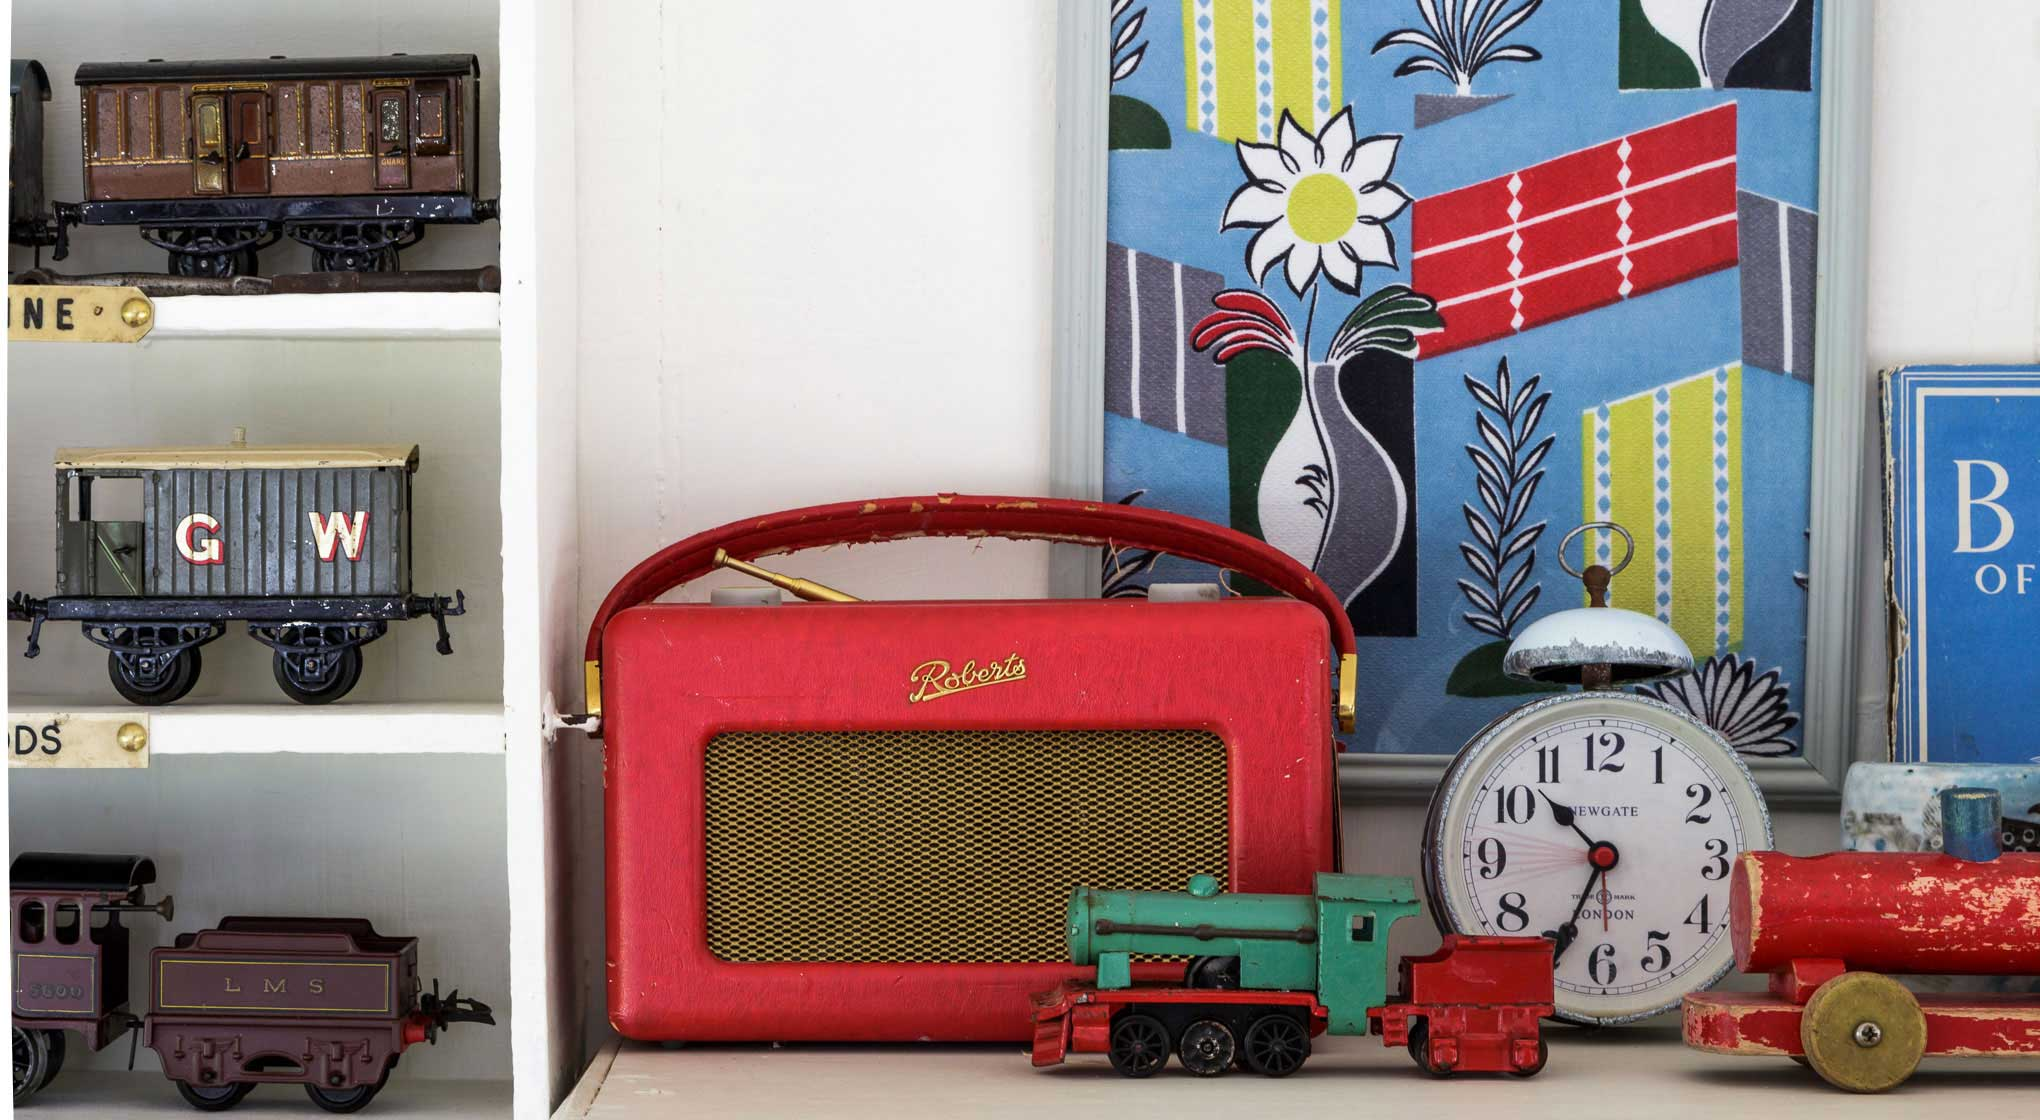 Carriage-Detail-Radio-and-Trains.jpg